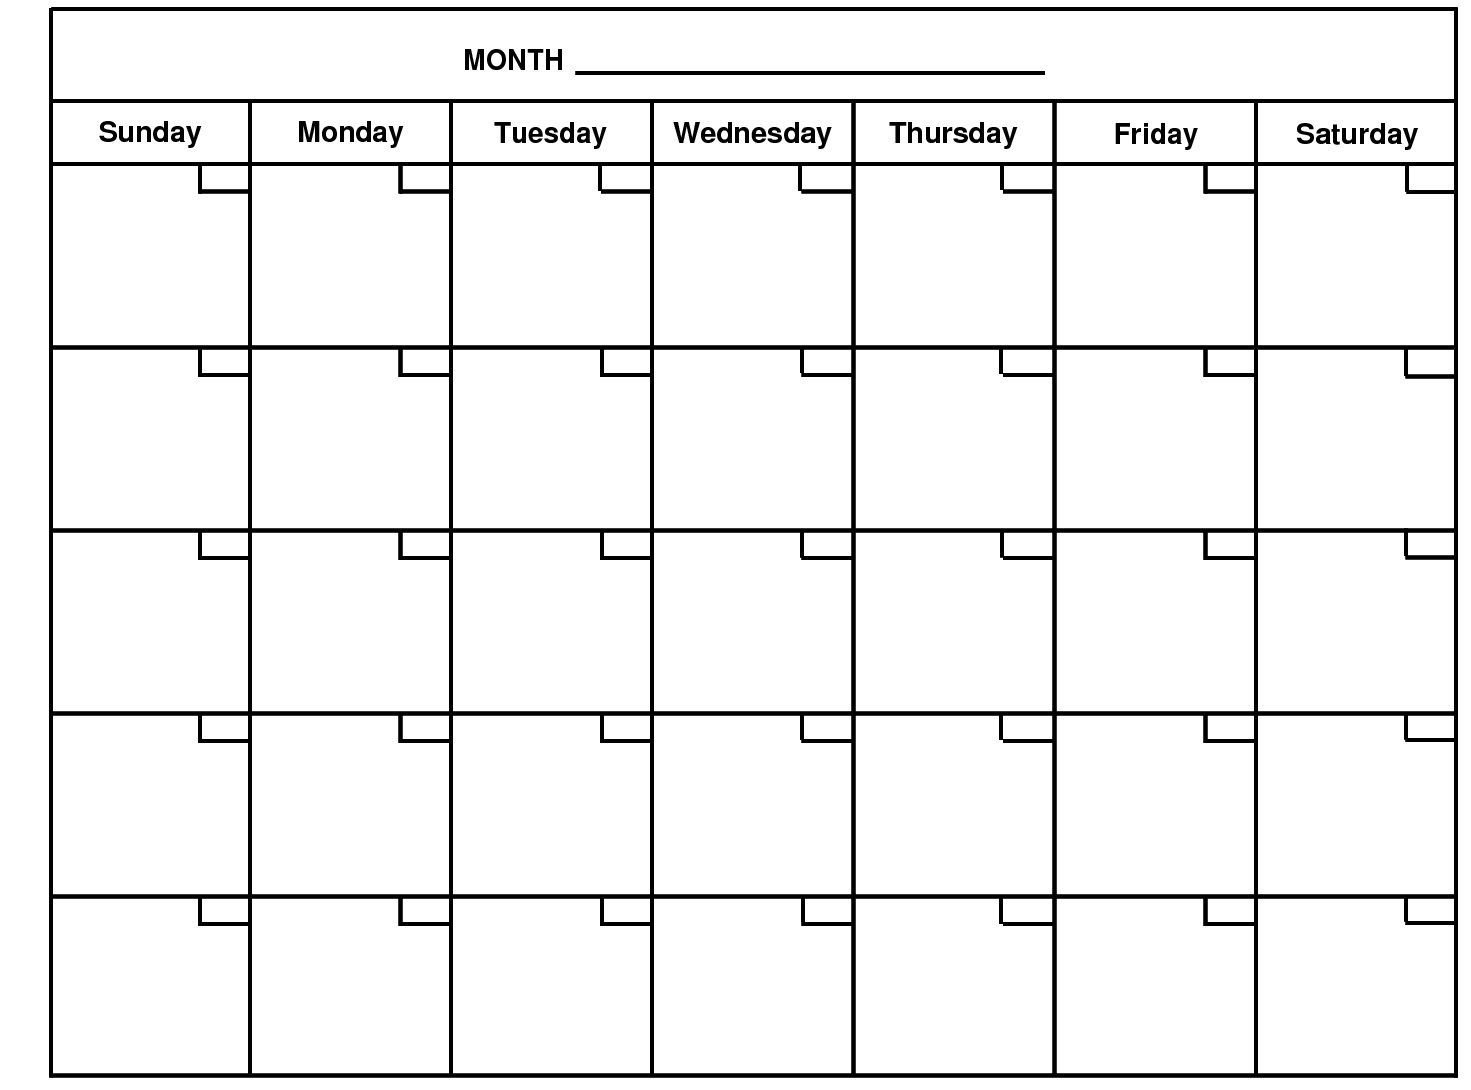 2020 Monthly Calendar Template Word - Google Search | Free 5 Ay Free Calendar